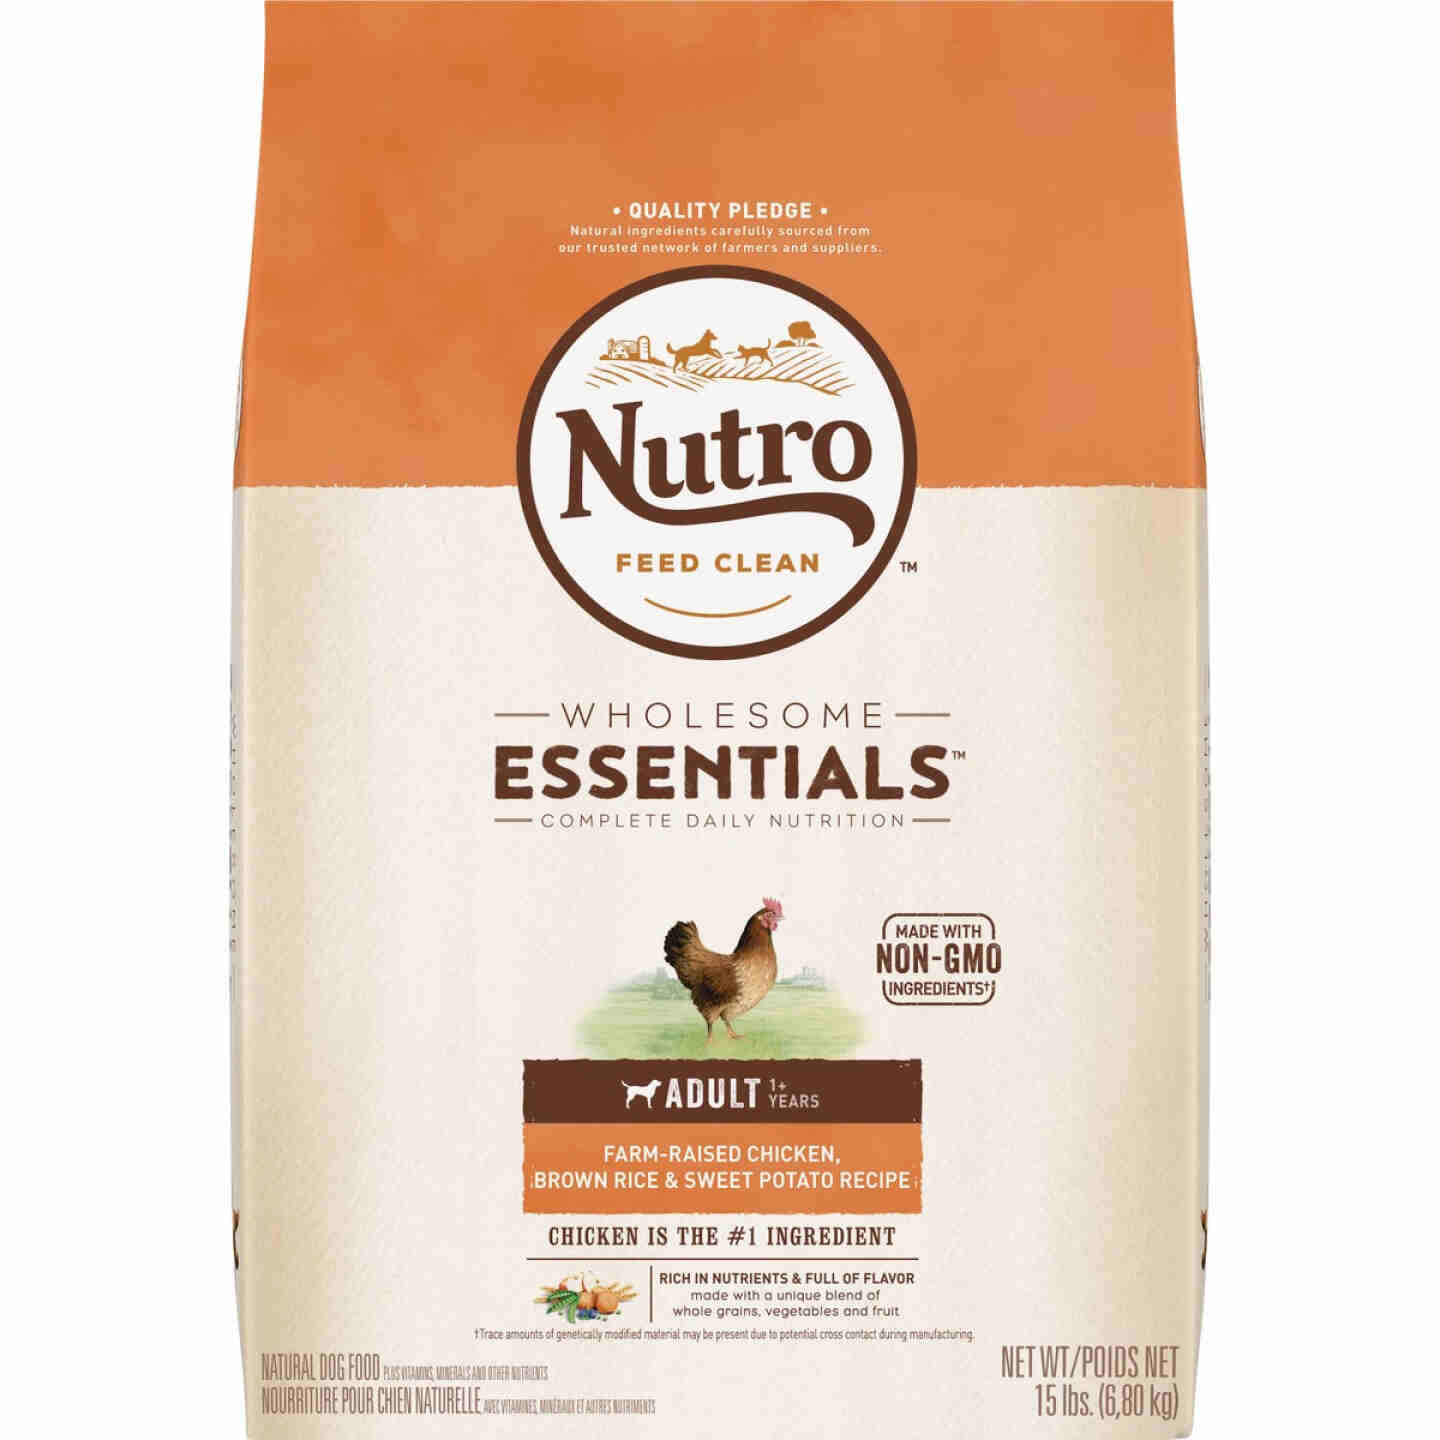 Nutro Wholesome Essentials 13 Lb. Chicken, Brown Rice, & Sweet Potato Adult Dry Dog Food Image 1